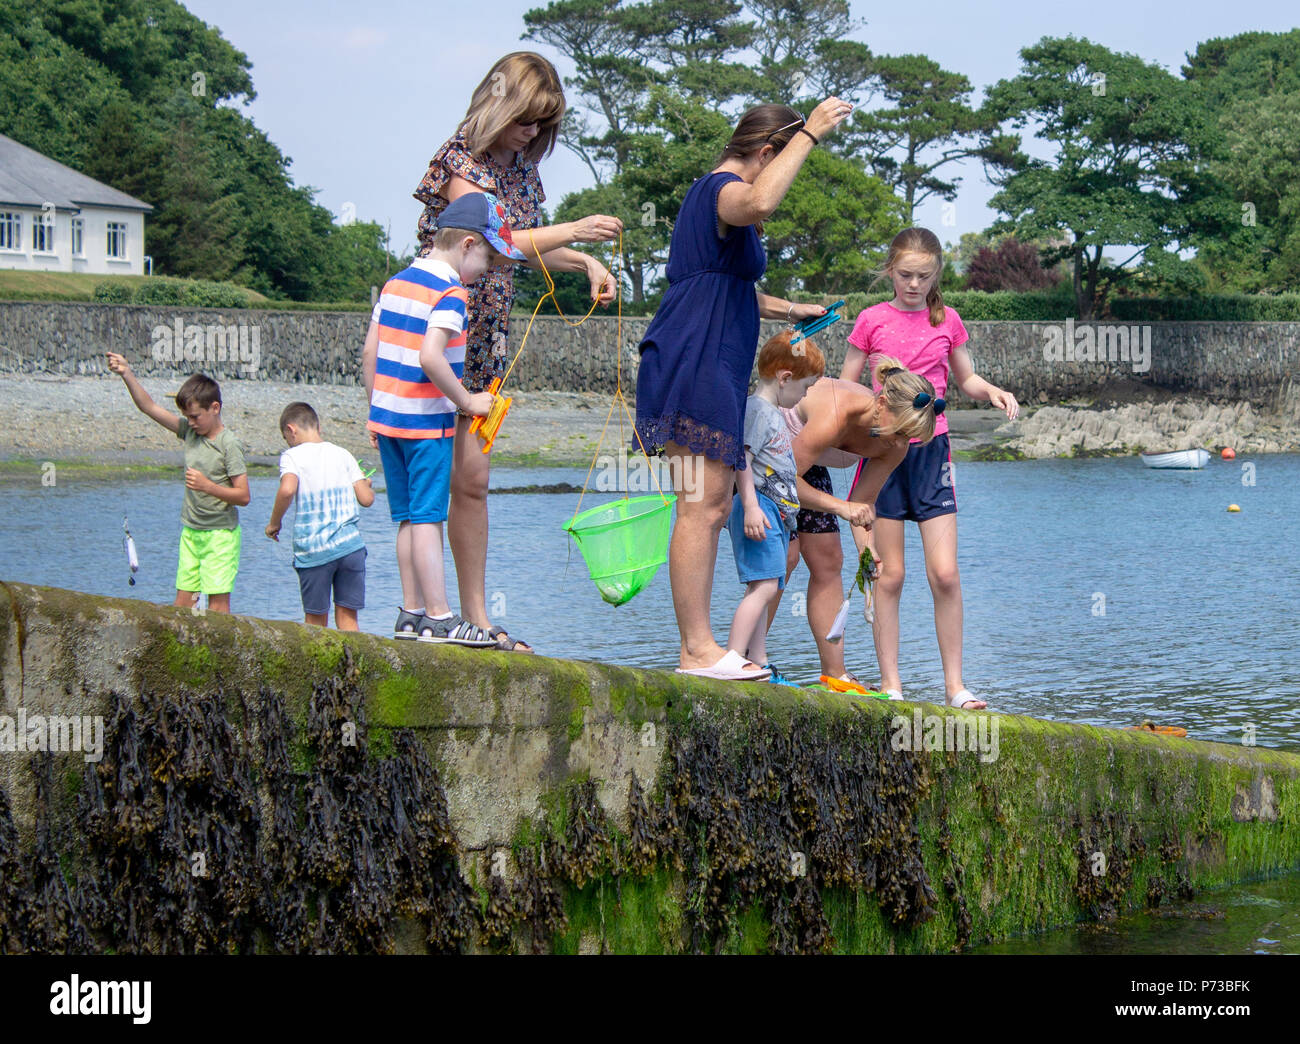 castletownshend-west-cork-ireland-4th-july-2018-mums-and-children-fishing-for-crabs-beside-the-slipway-in-castletownshend-on-yet-another-gloriously-sunny-afternoon-credit-aphperspectivealamy-live-news-P73BFK.jpg